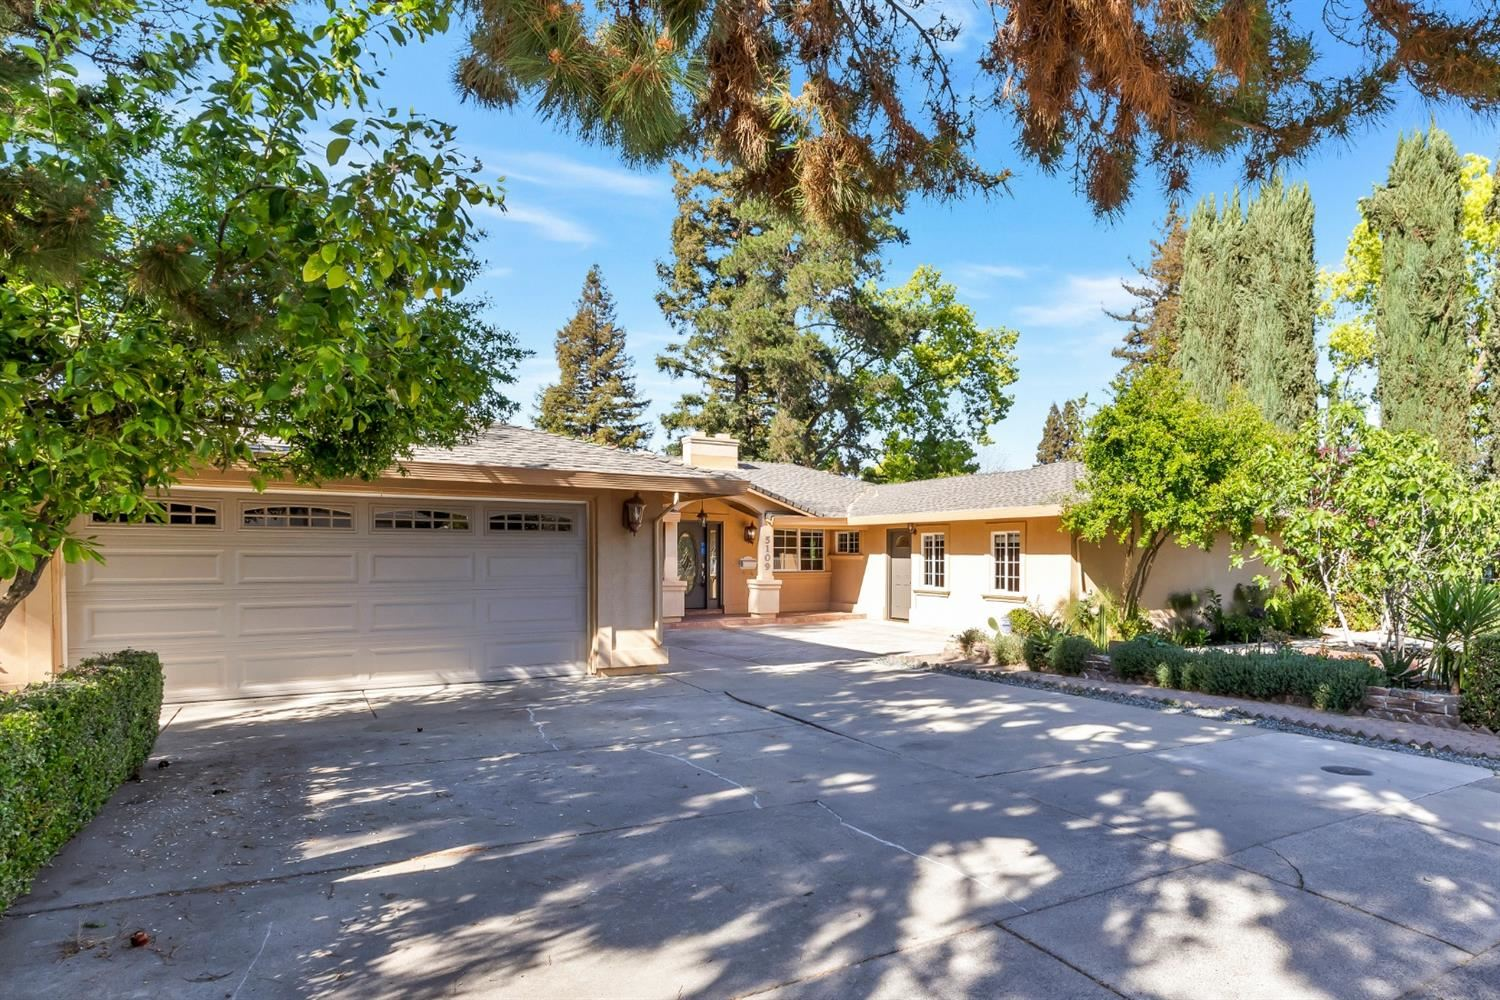 Photo of 5109 Locust Avenue, Carmichael, CA 95608 (MLS # 221029960)